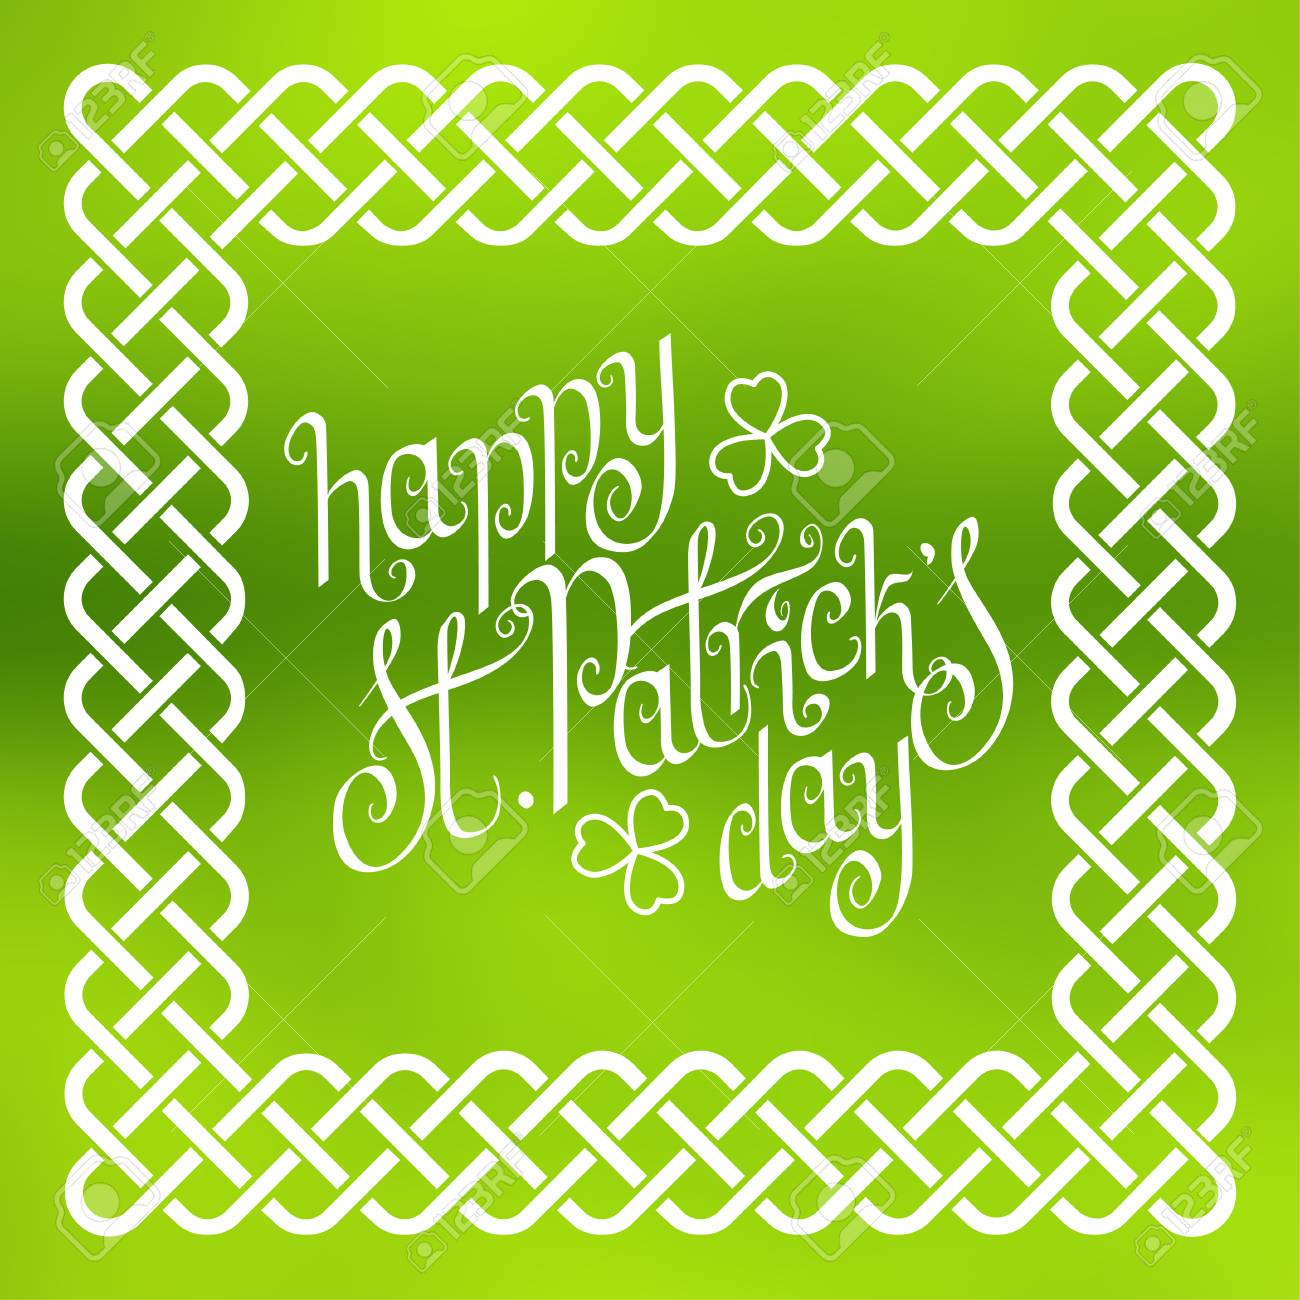 Hand Written St Patricks Day Greetings In Traditional Style